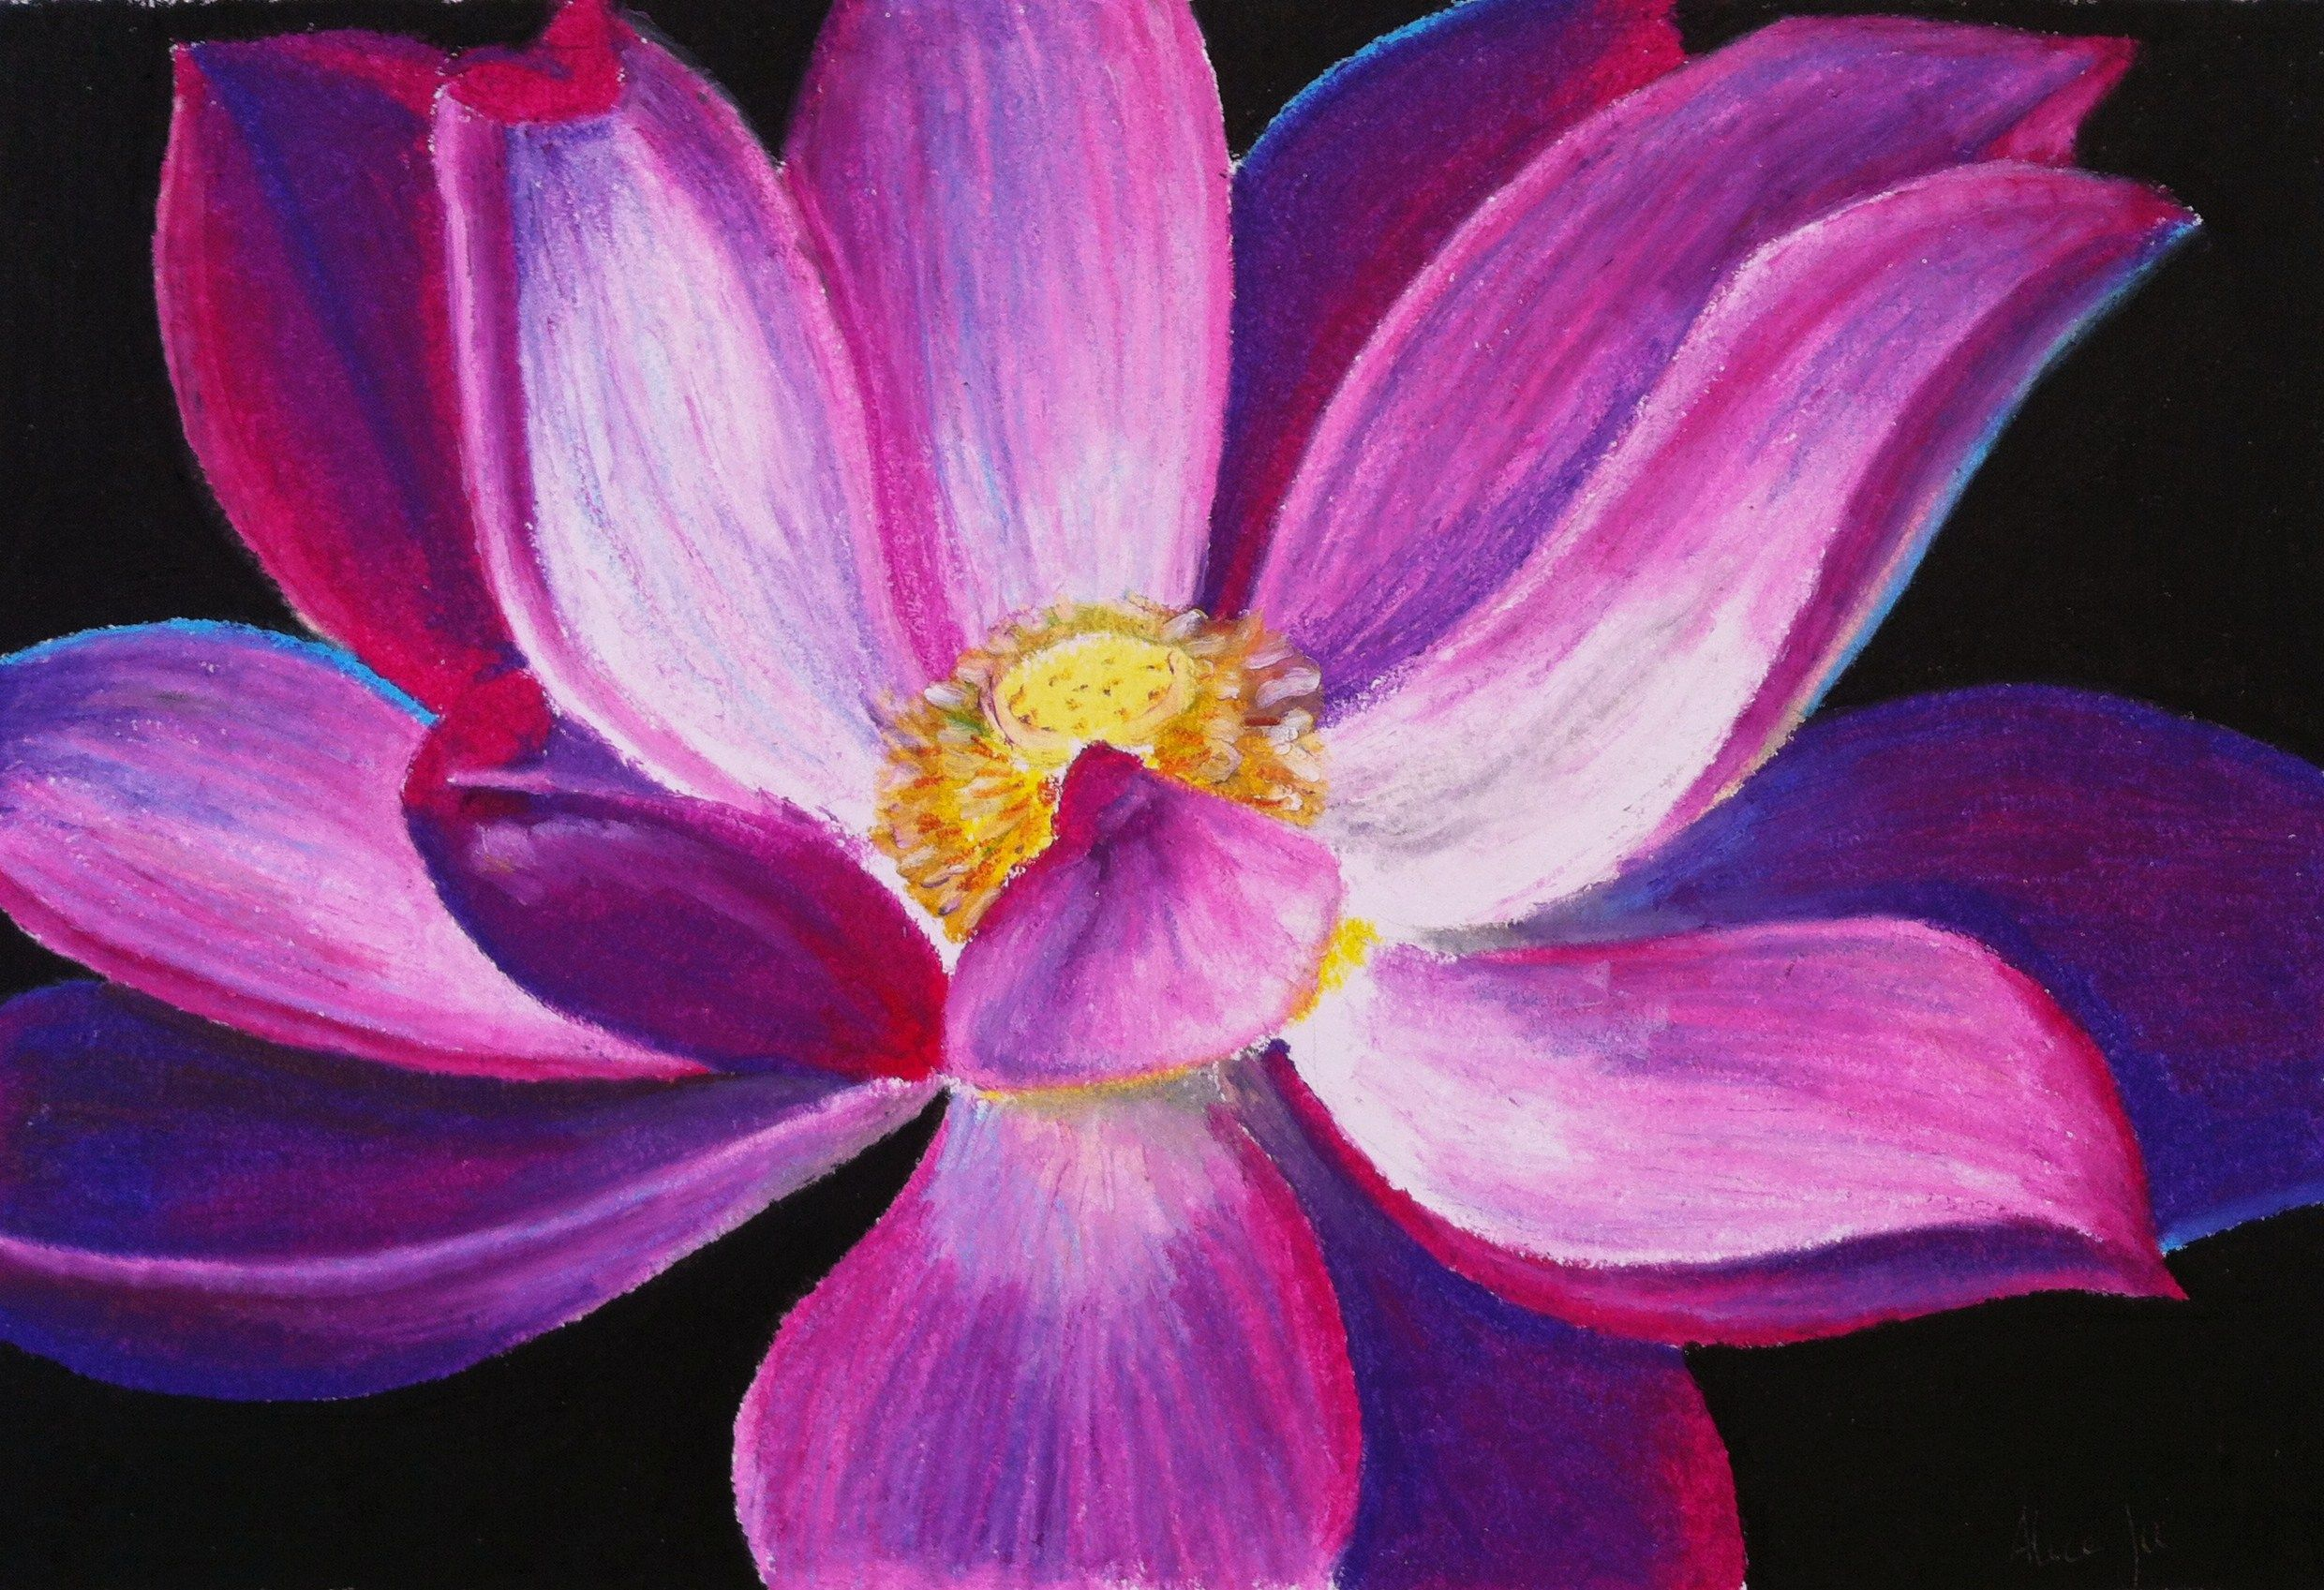 Oil pastel drawing flowers google search art projects pinterest oil pastel drawing flowers google search izmirmasajfo